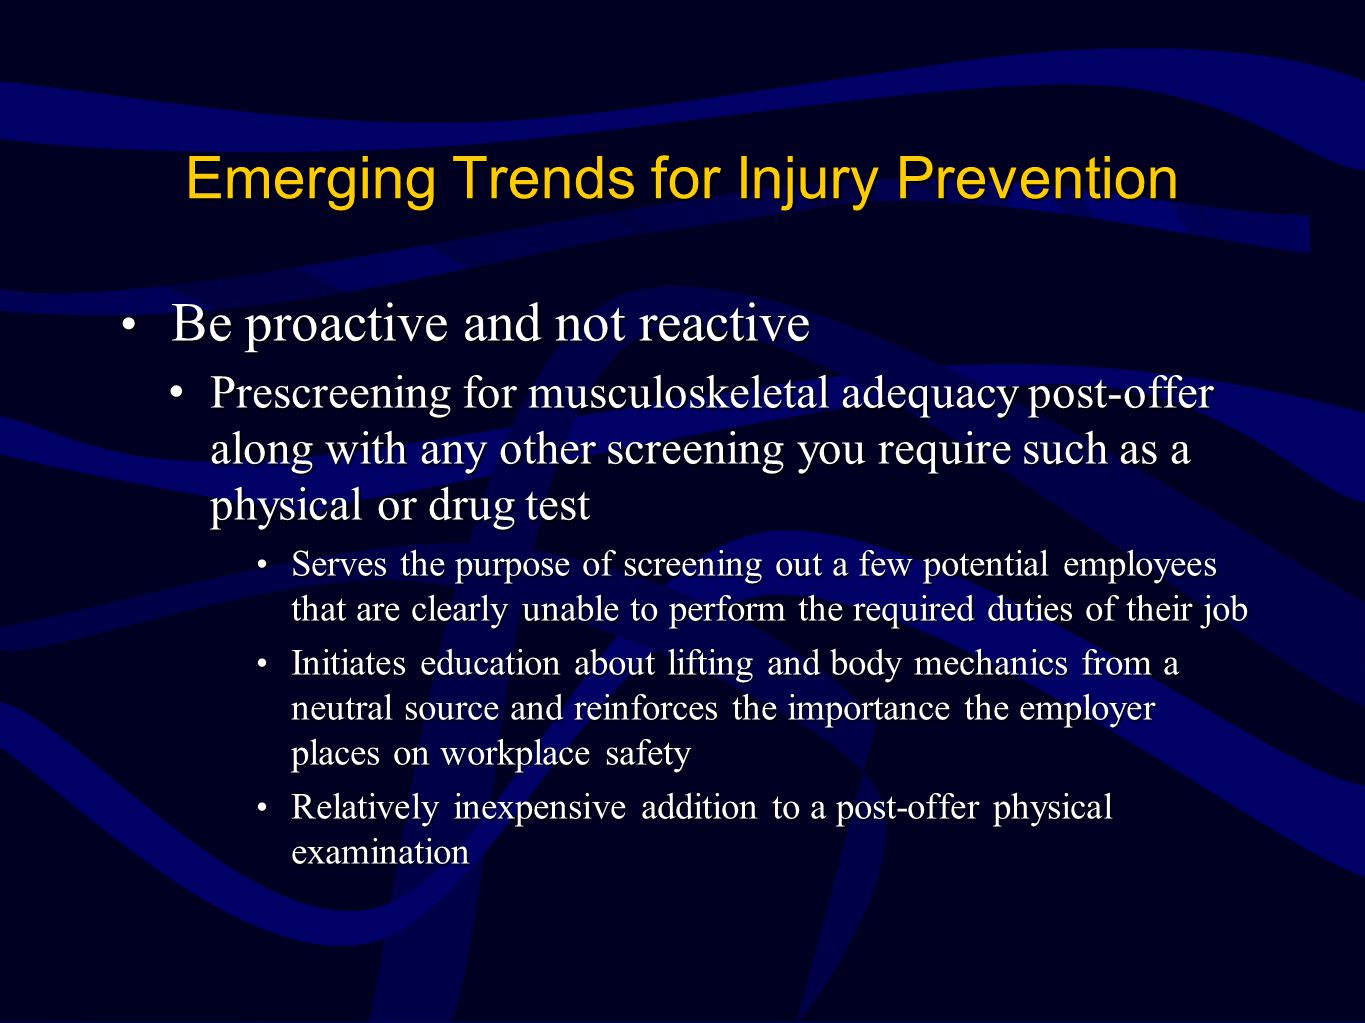 Emerging Trends for Injury Prevention Be proactive and not reactive Be proactive and not reactive Prescreening for musculoskeletal adequacy post-offer